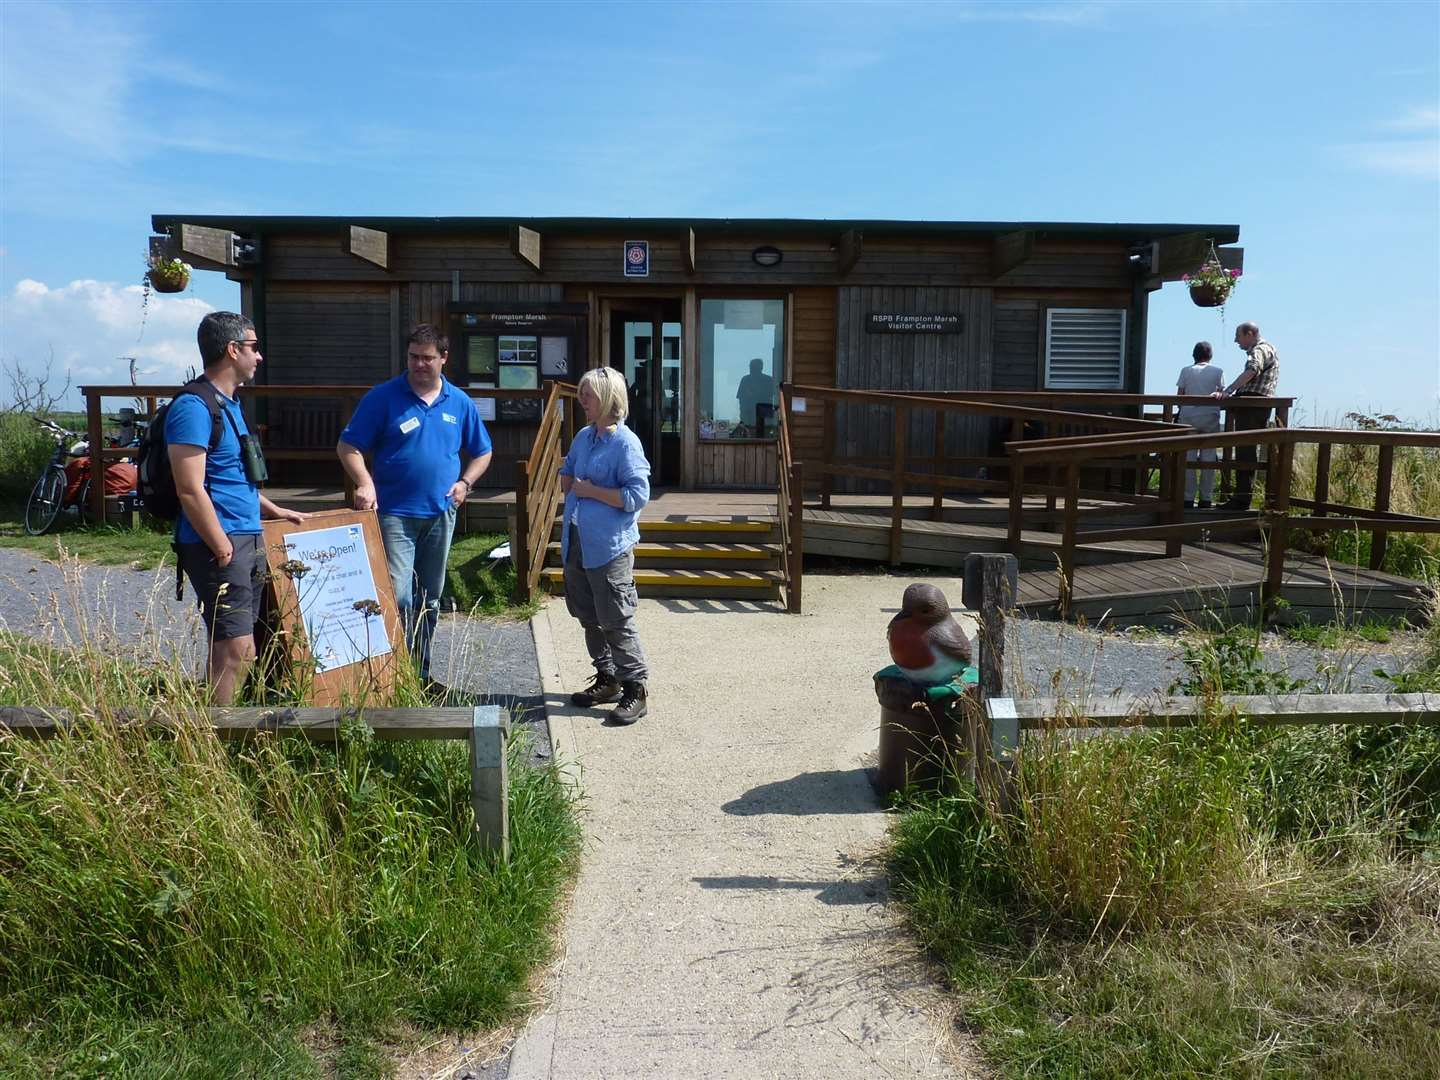 There are activities for the family at Frampton Marsh RSPB, including the 'Big Wild Sleep out' on Saturday. (CREDIT: P Cashman RSPB)